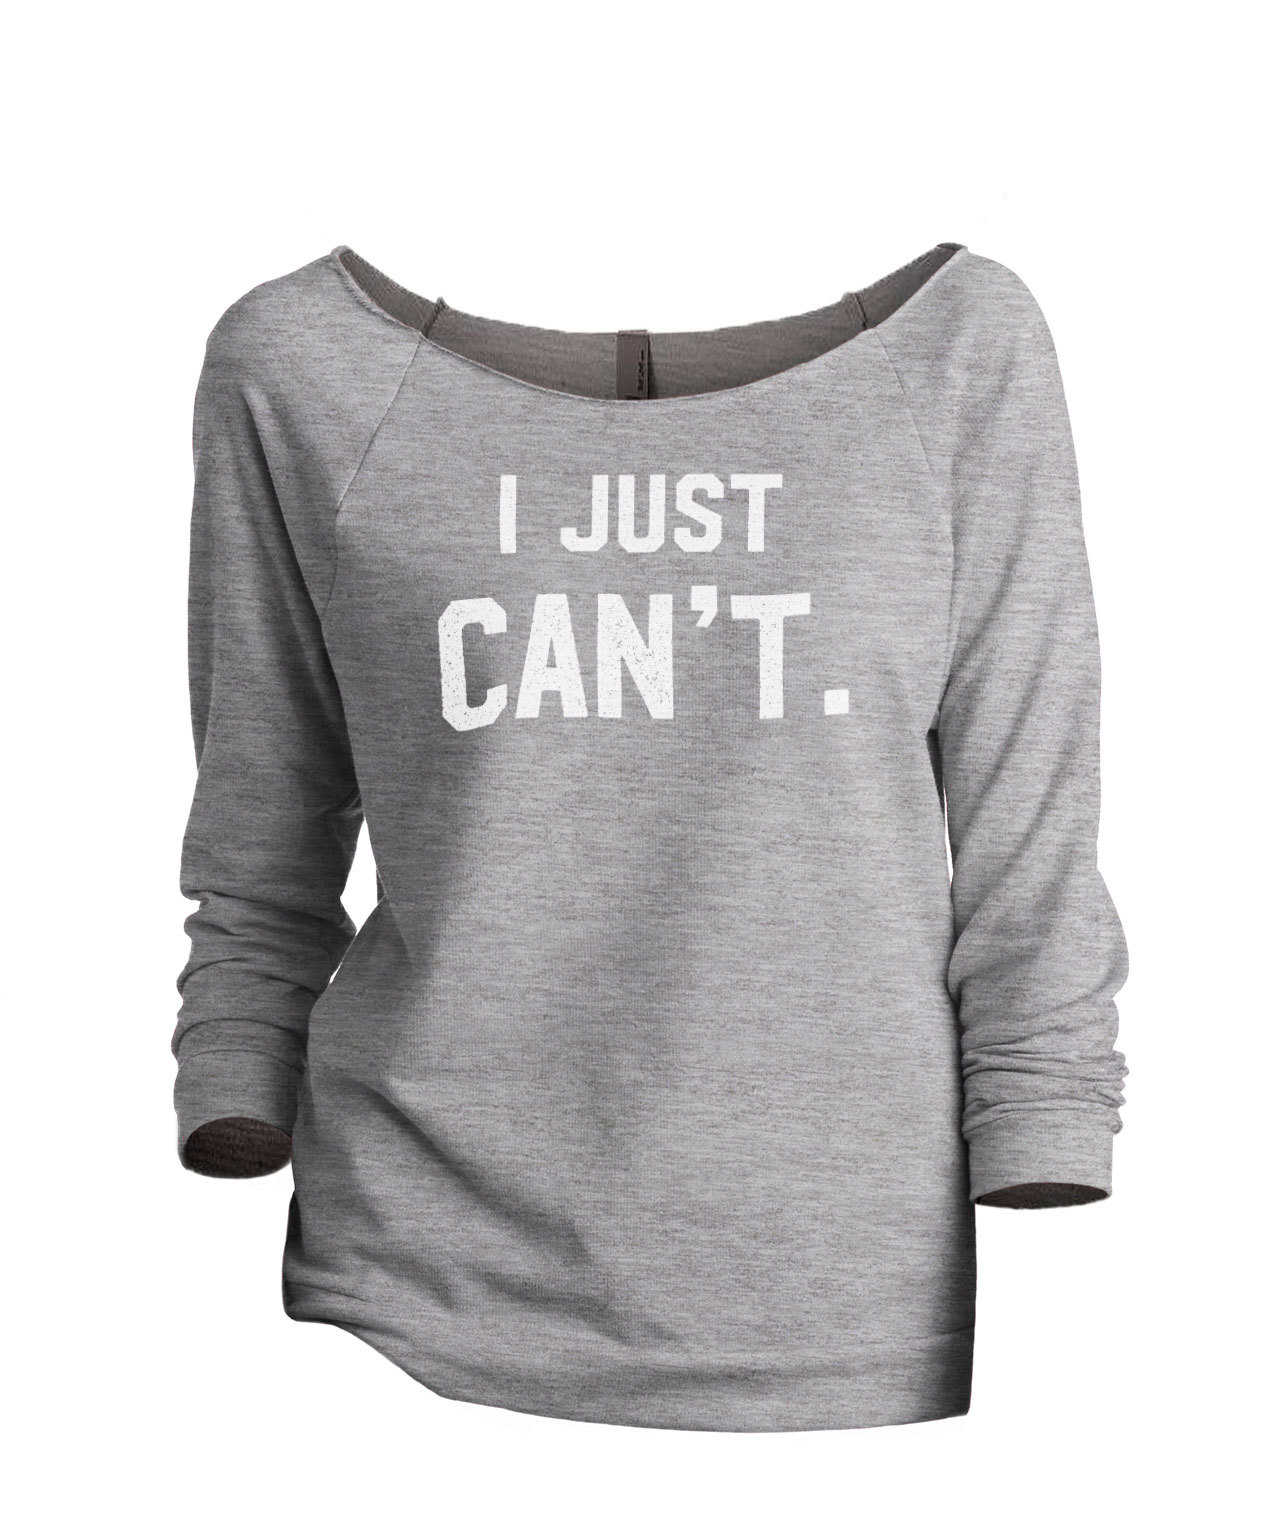 Thread Tank I Just Can't Women's Slouchy 3/4 Sleeves Raglan Sweatshirt Sport Gre